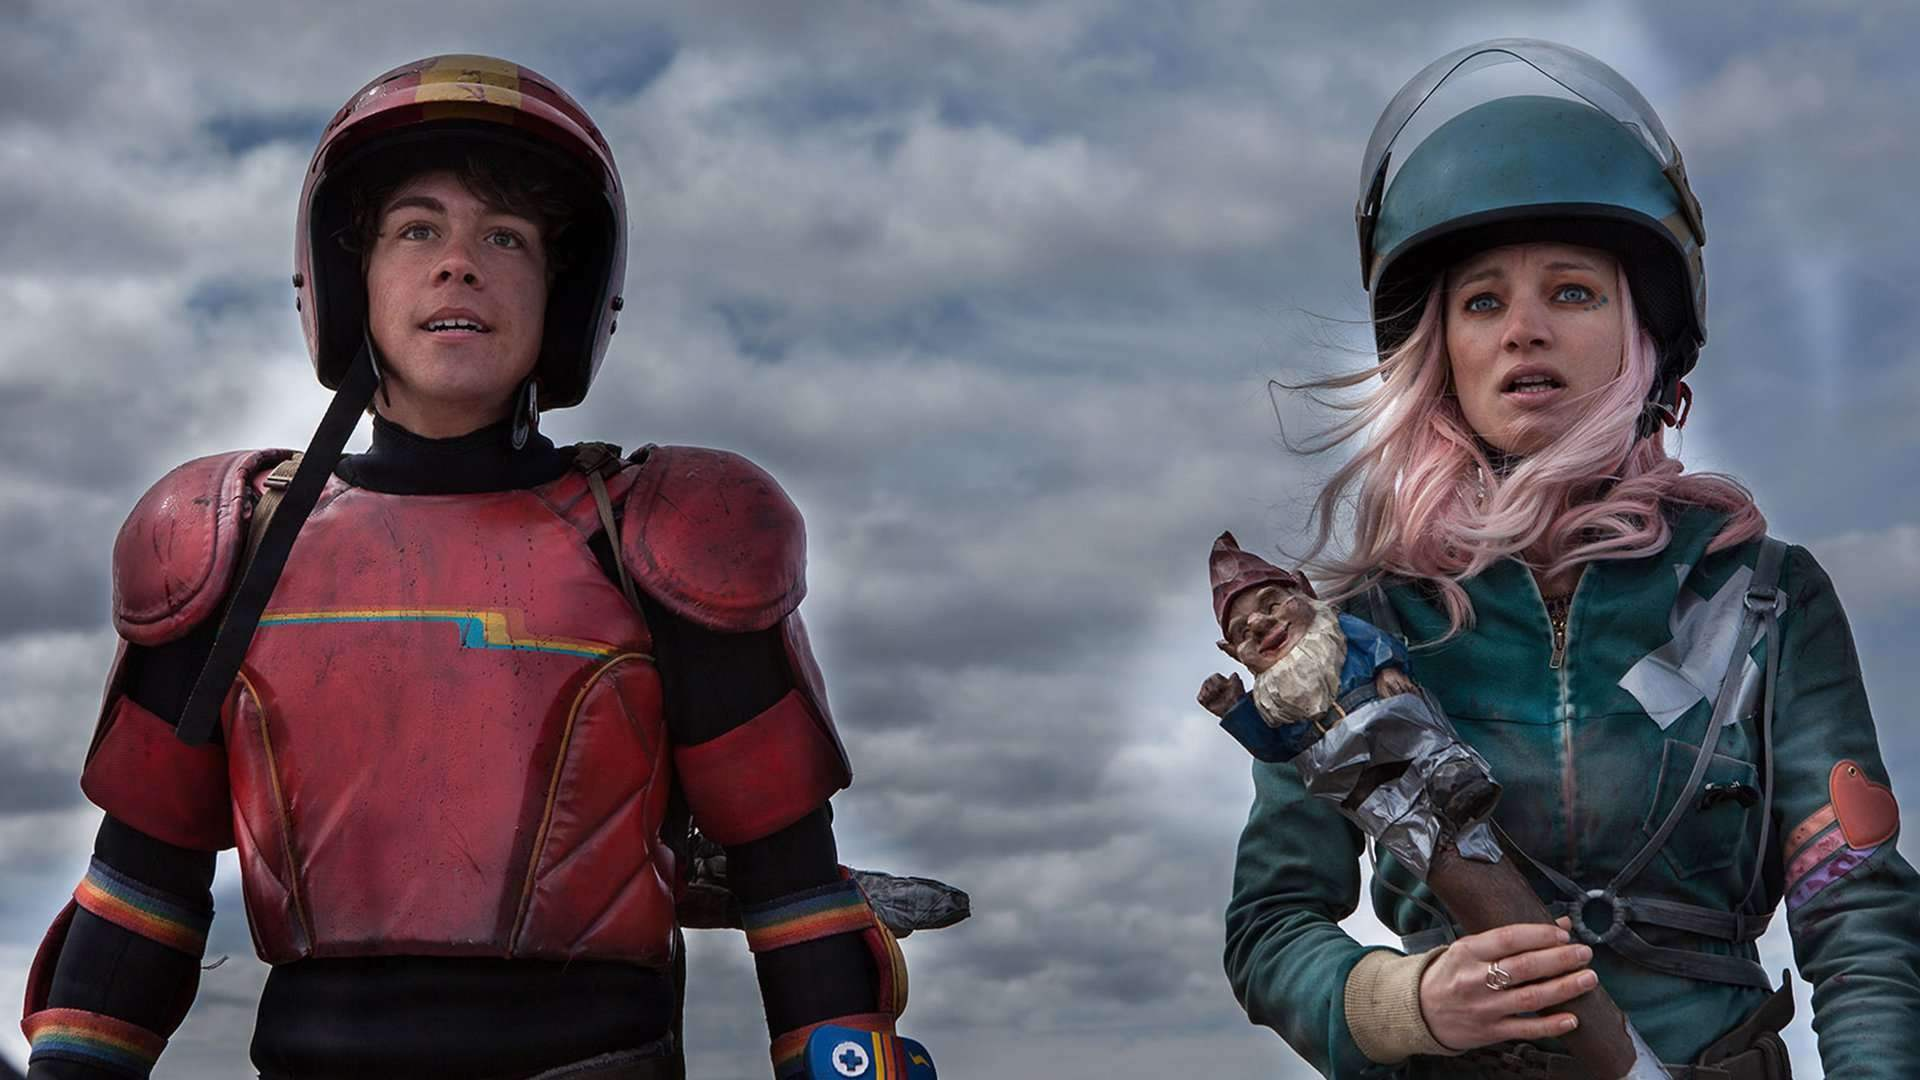 Munro Chambers and Laurence Lebouef in Turbo Kid